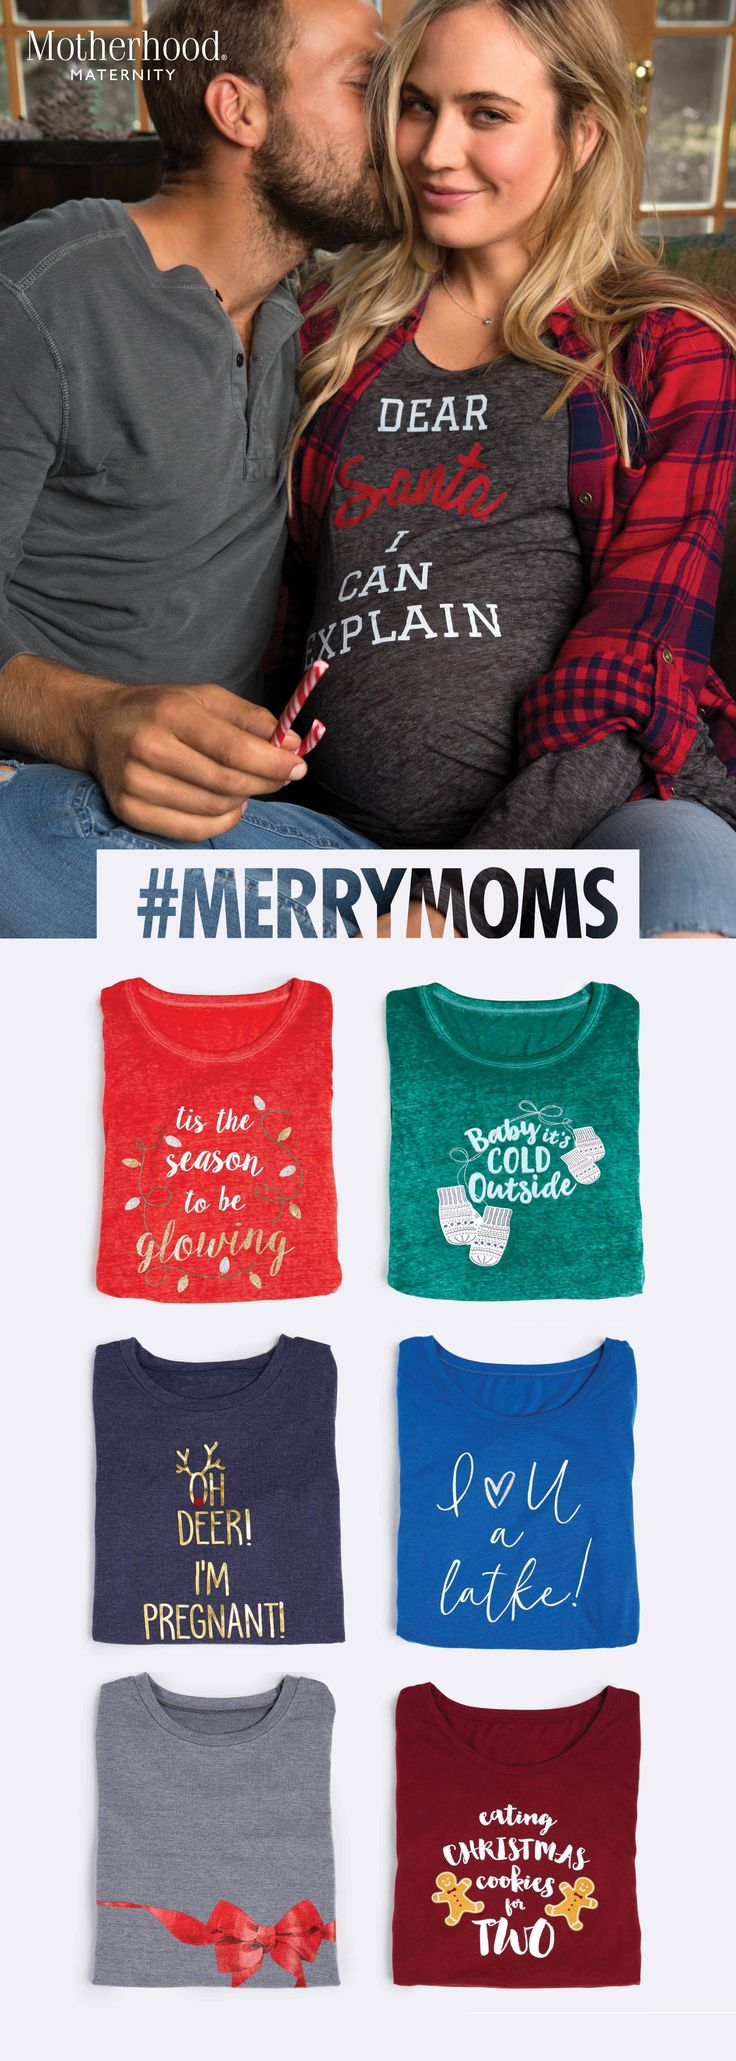 Create your own tidings of joy this season with graphic tee style that speaks from the bump. #MerryMoms @MotherhoodMaternity